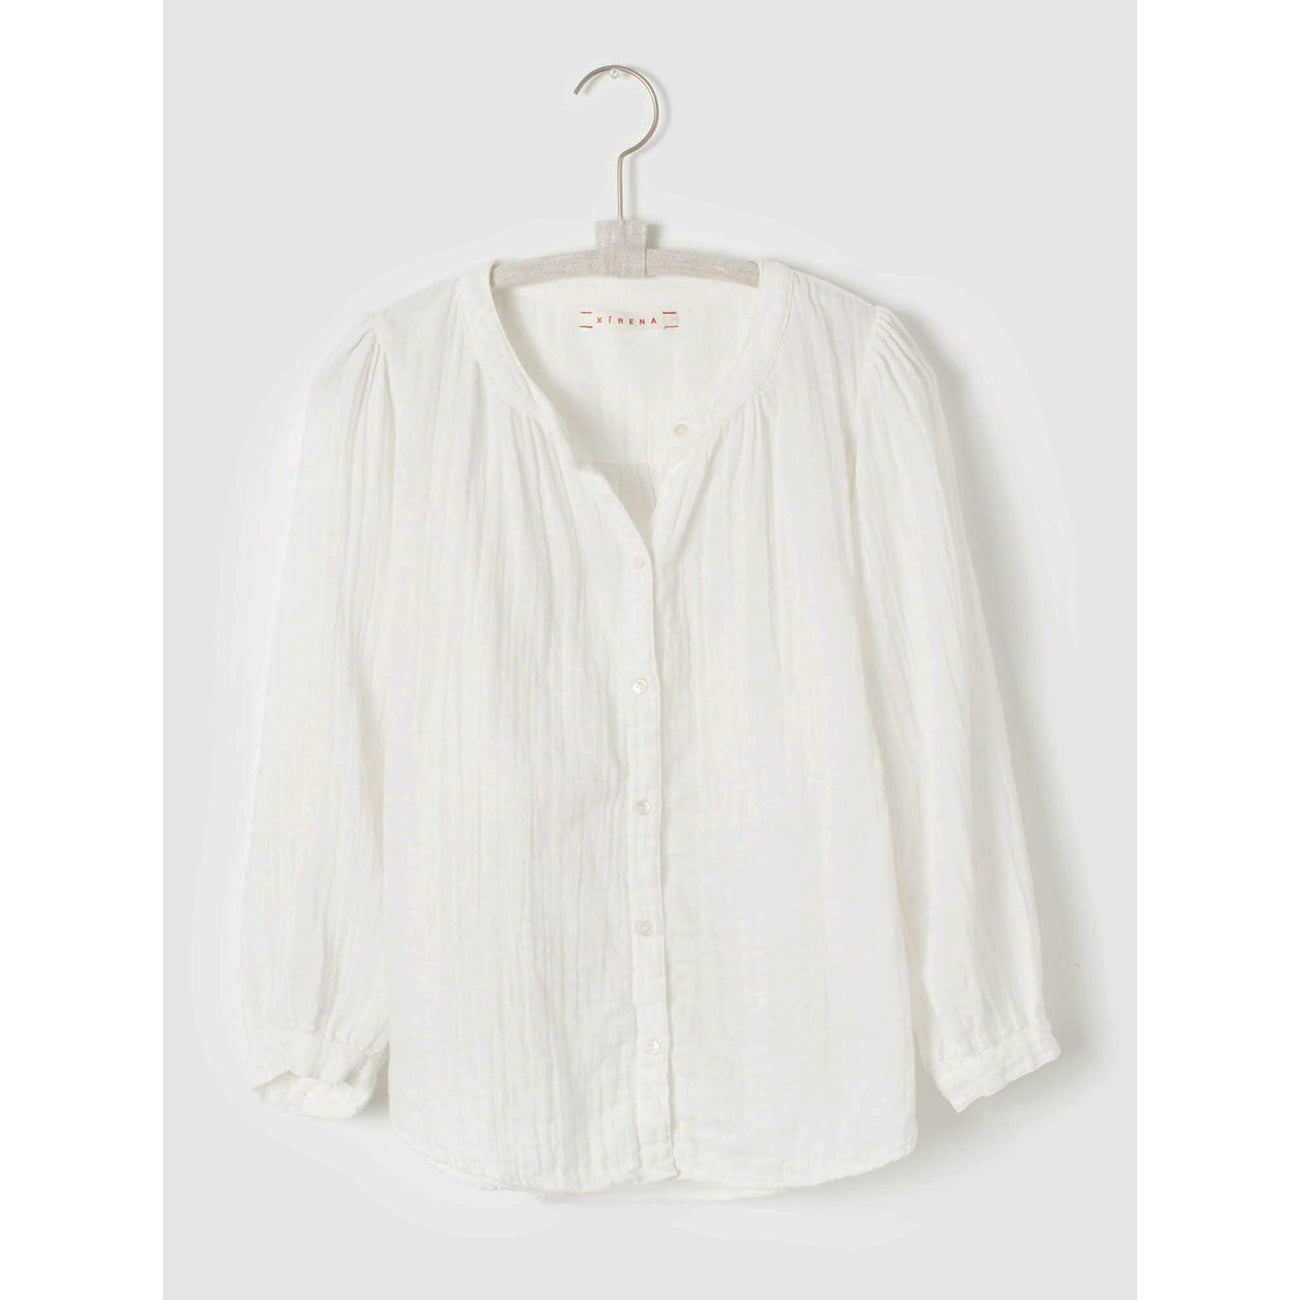 lark shirt in white wash